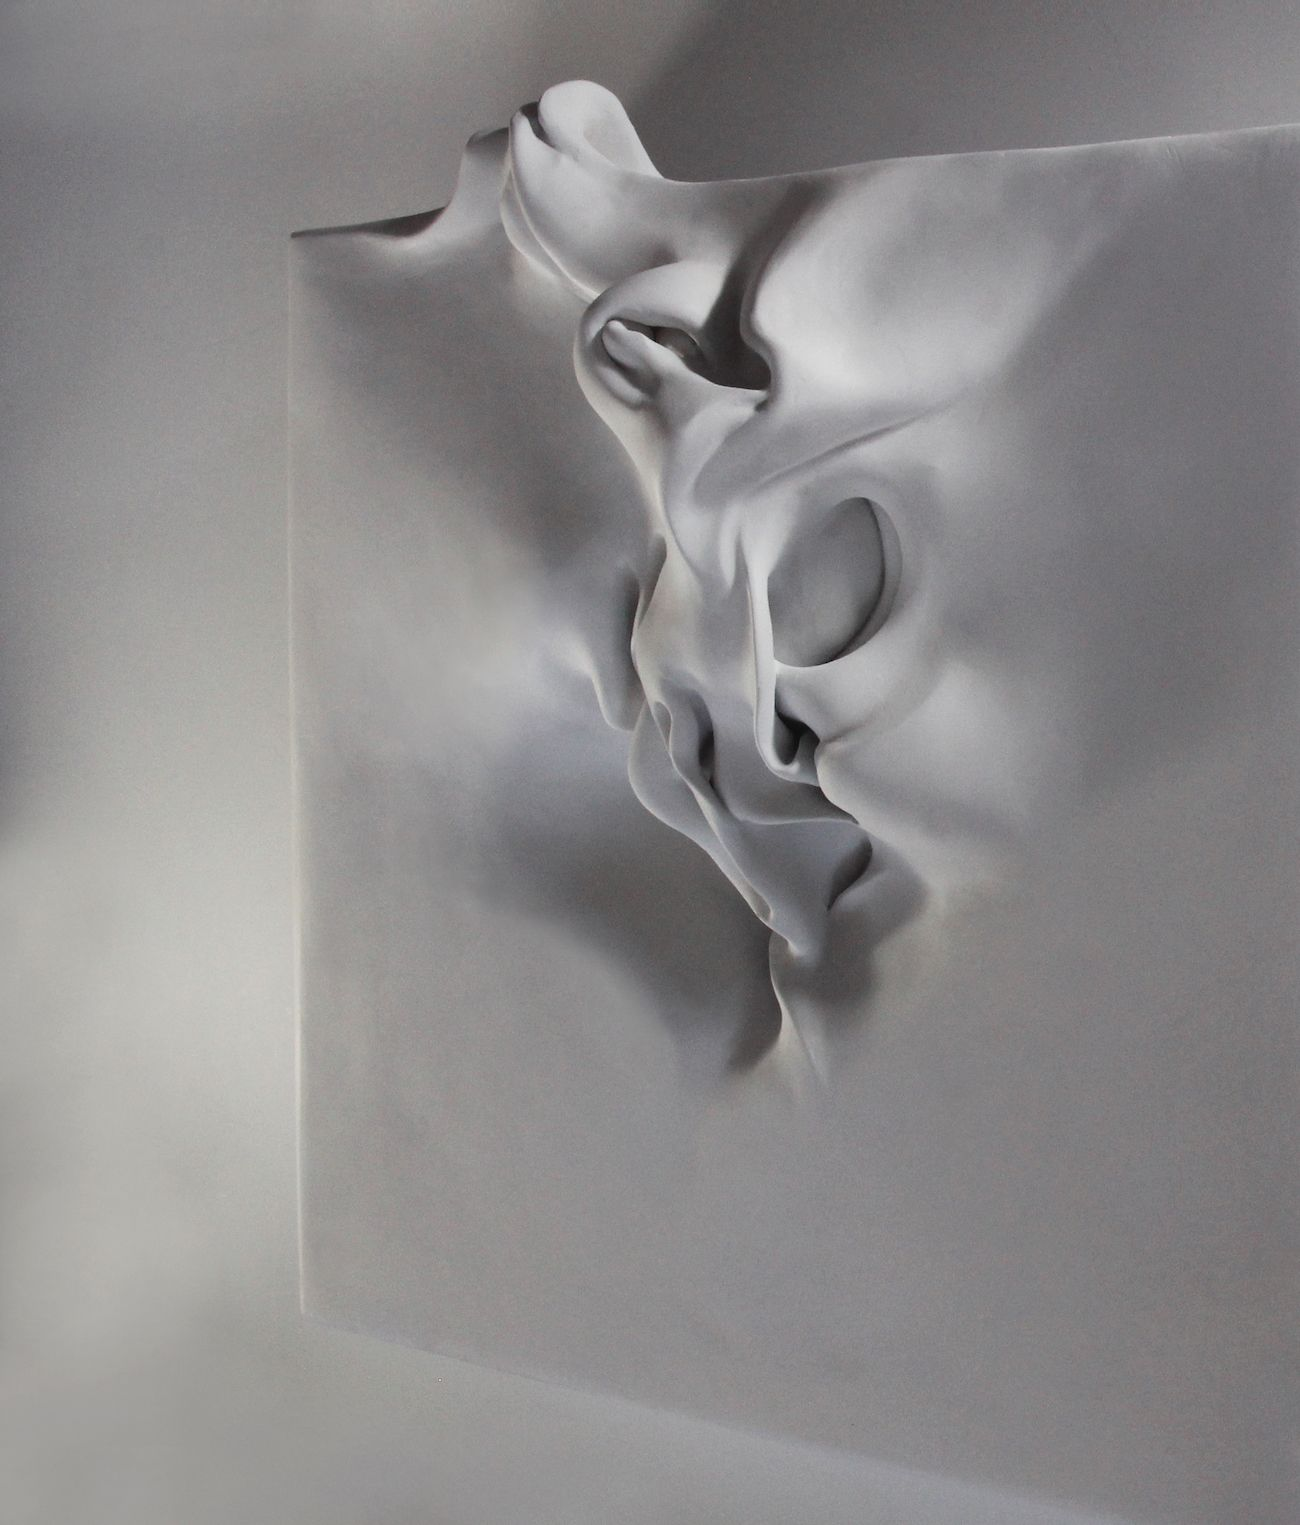 Be-Formed 3,Sharon Brill,Sculpture contemporaine, detail 2